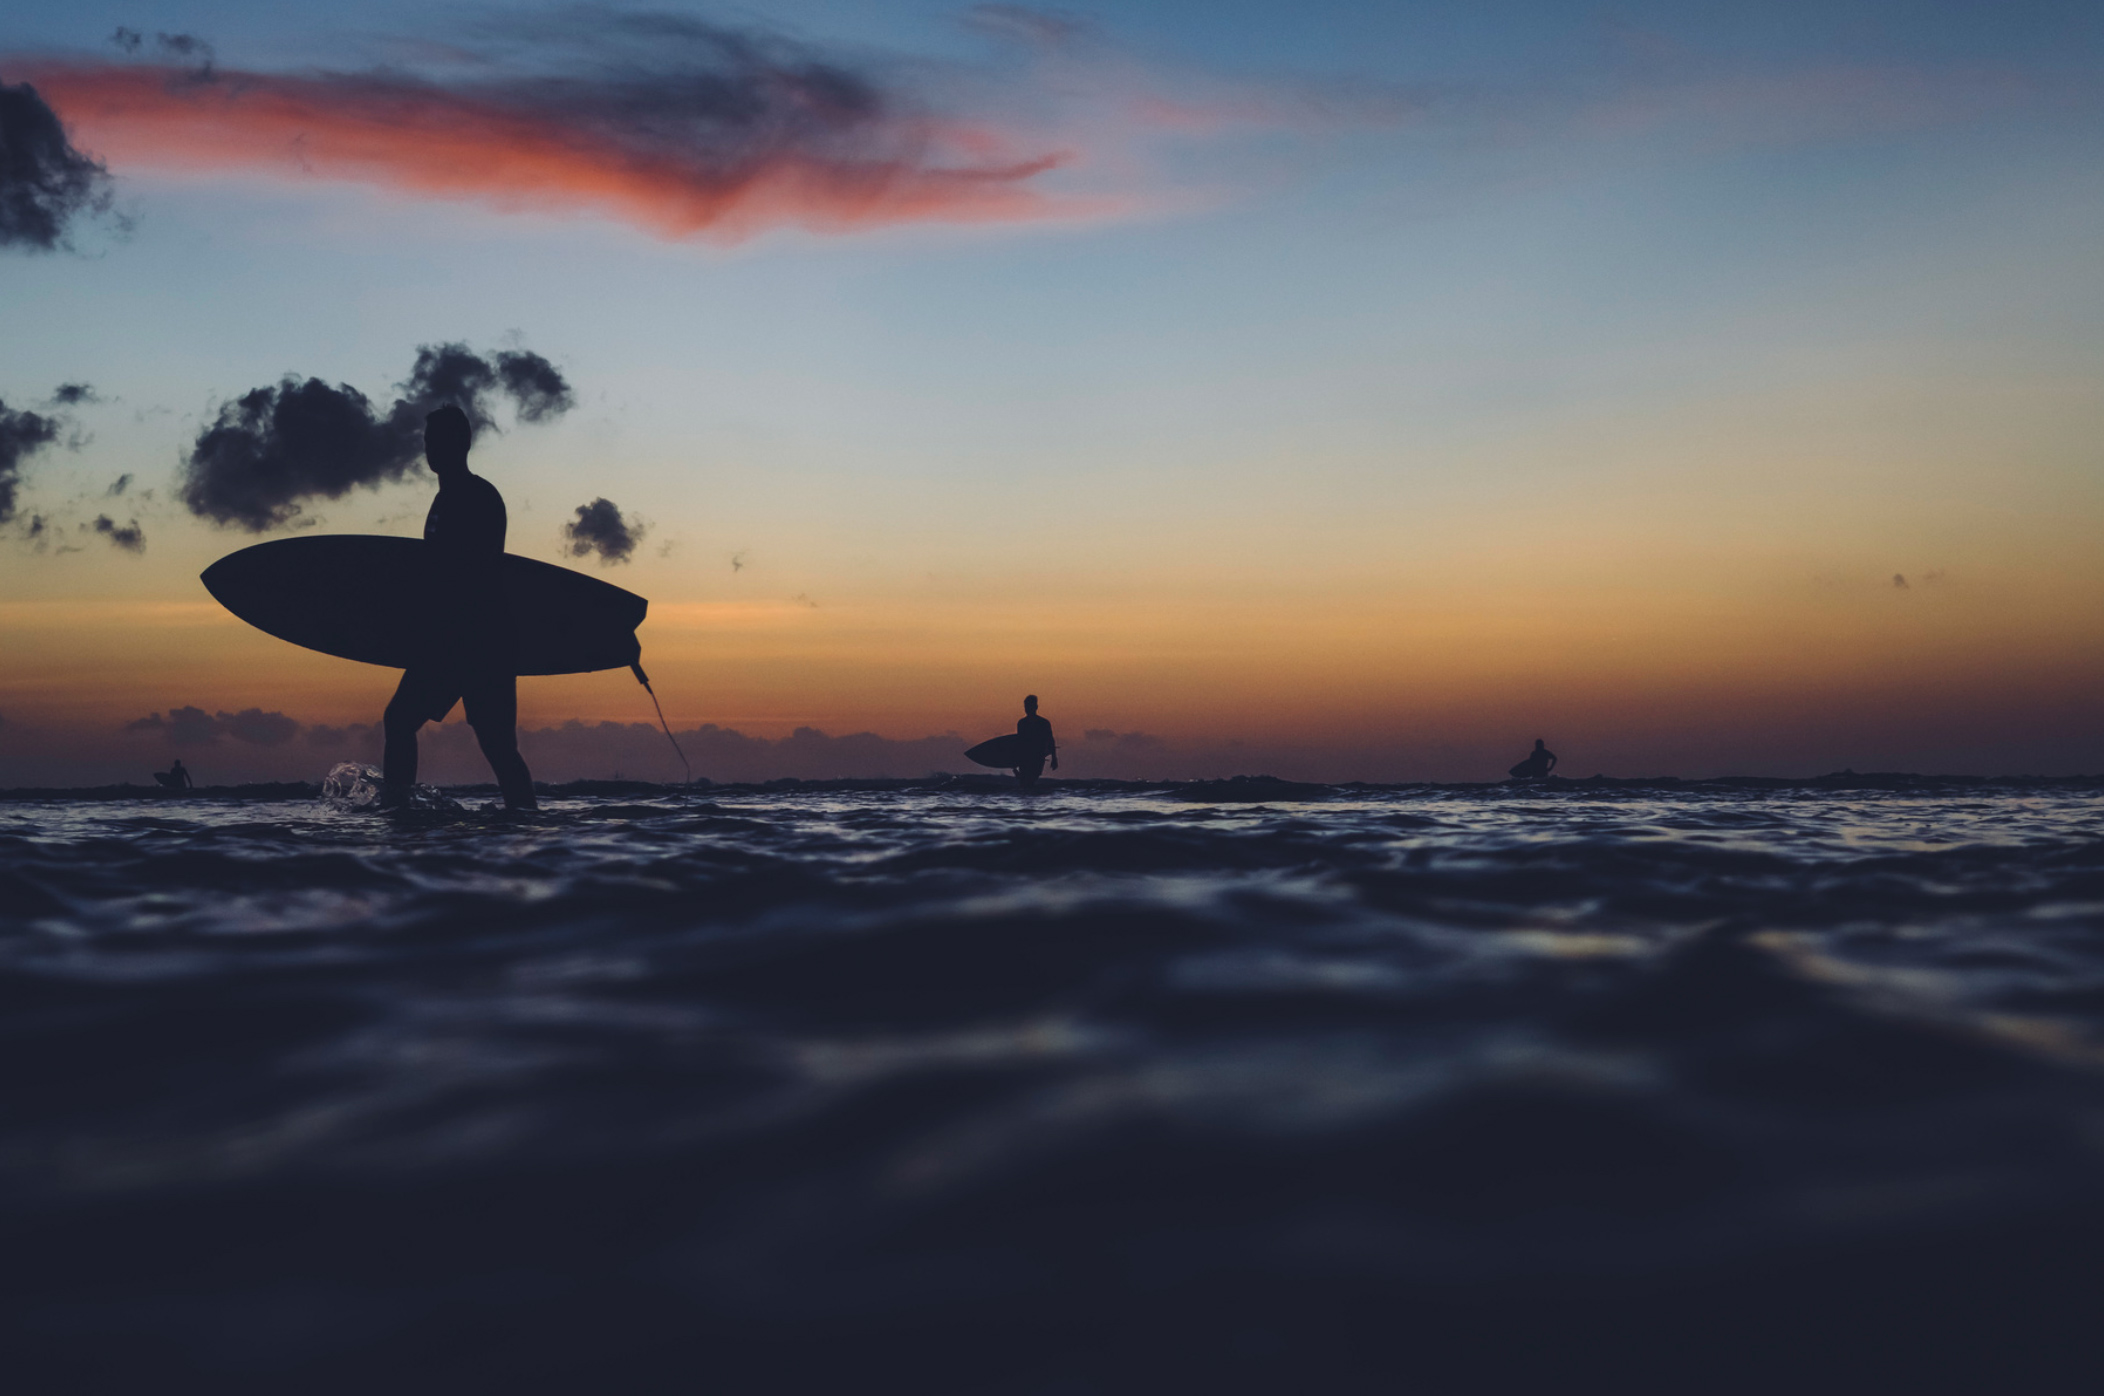 Dramatic Surfing Photos by Kalle Lundholm (13 pics)